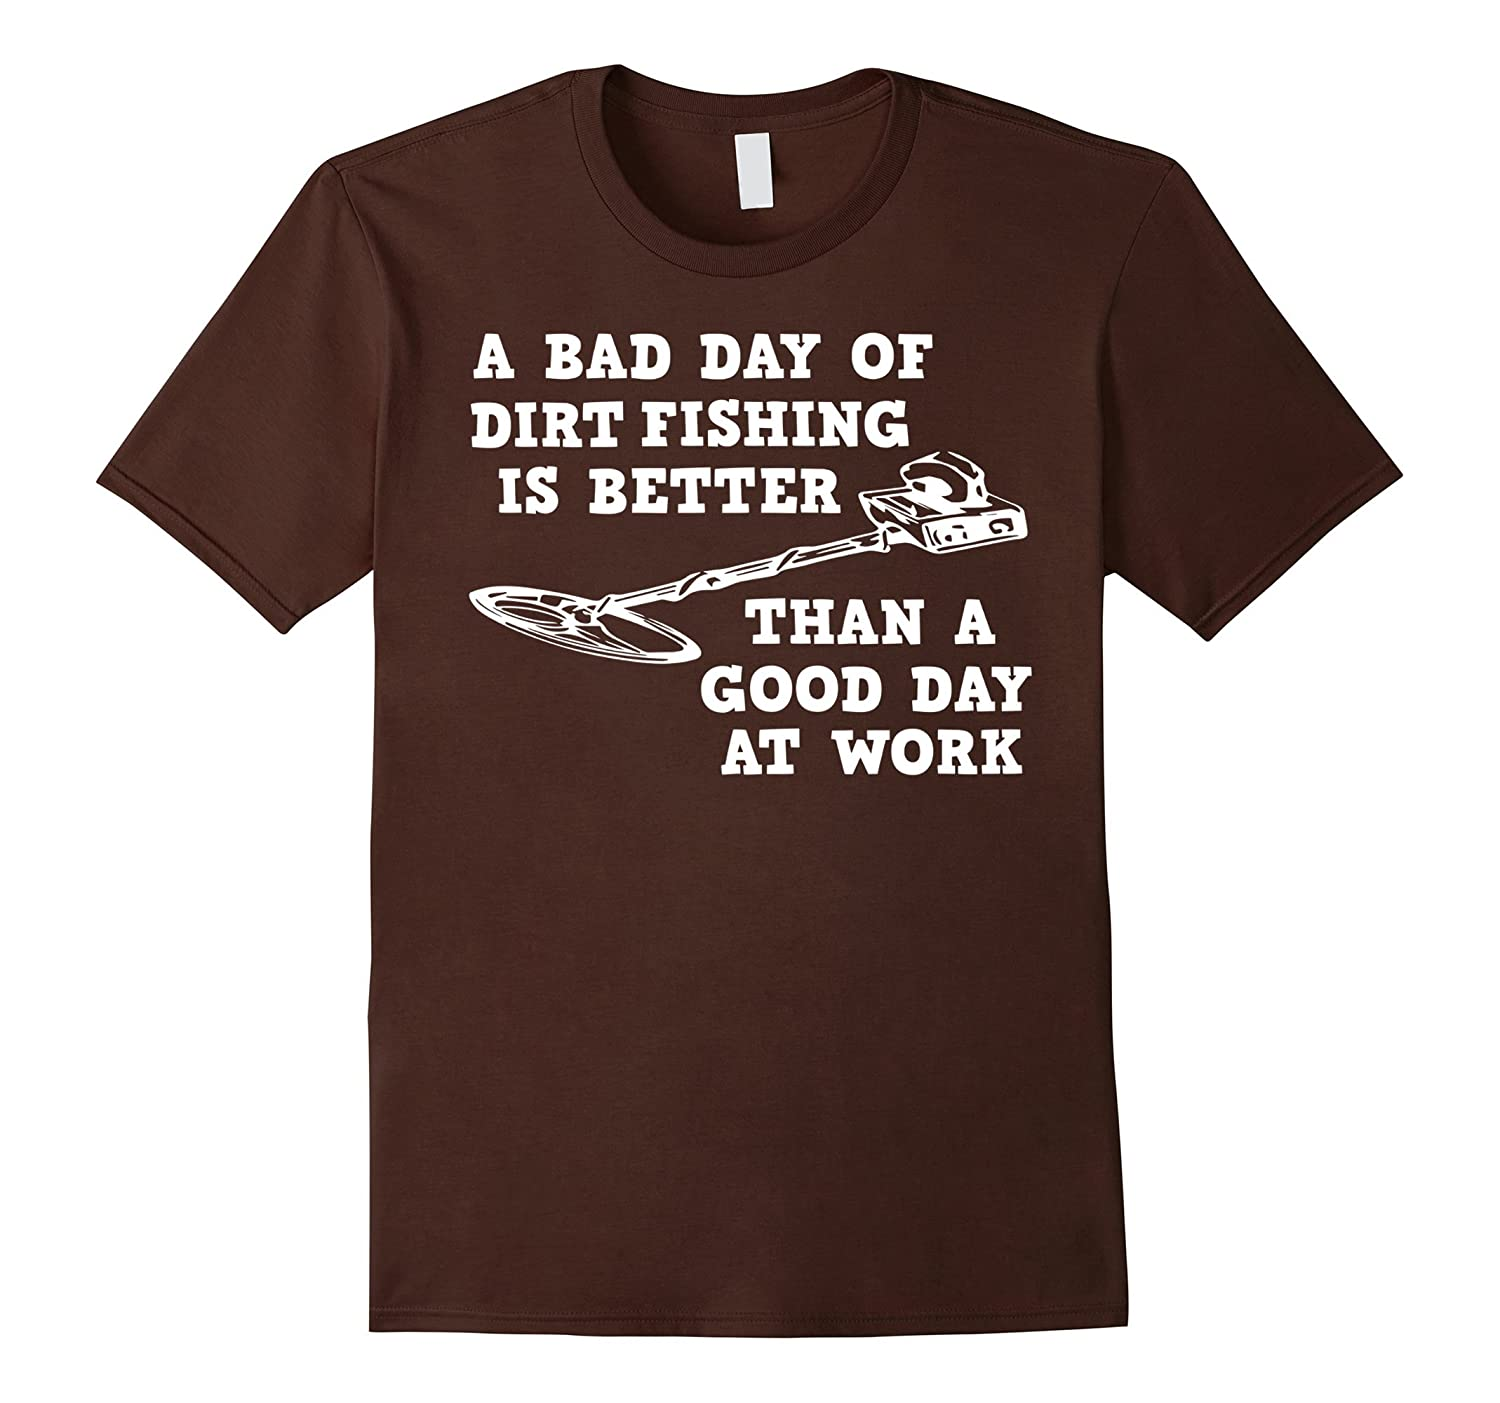 Bad Day Dirt Fishing Better Than Good Day At Work T-shirt-BN